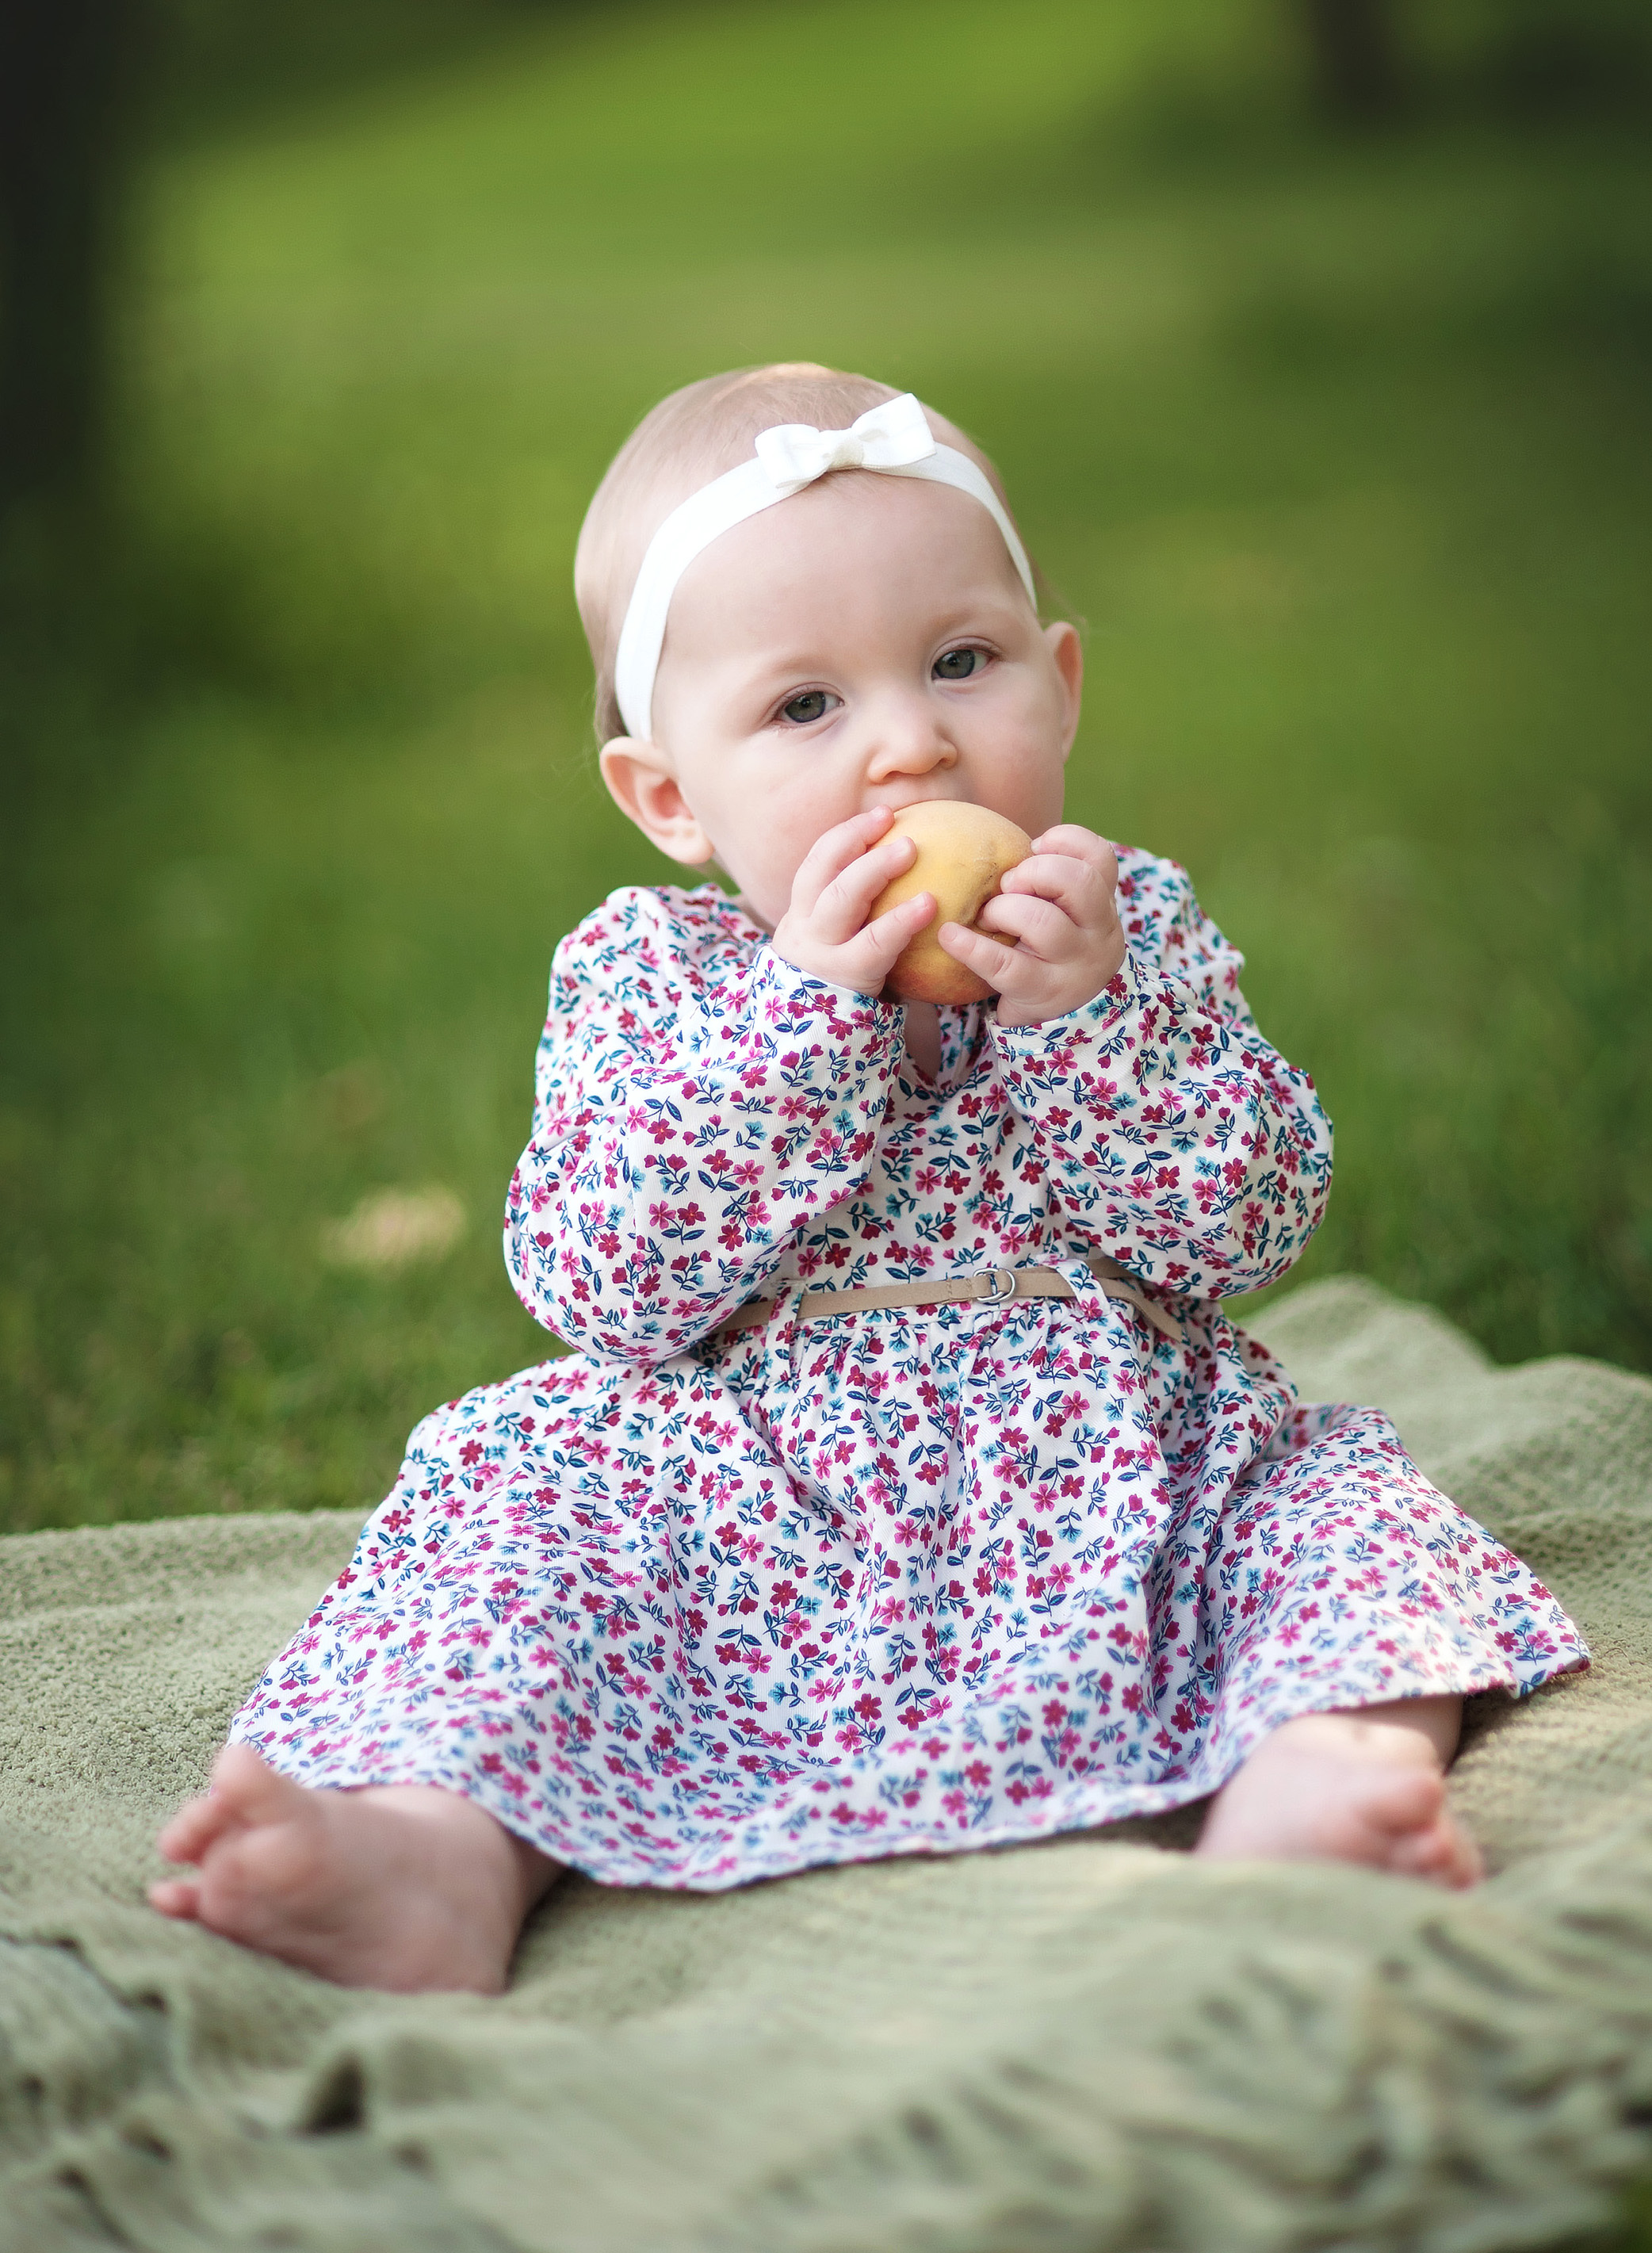 baby eating a peach in a dress